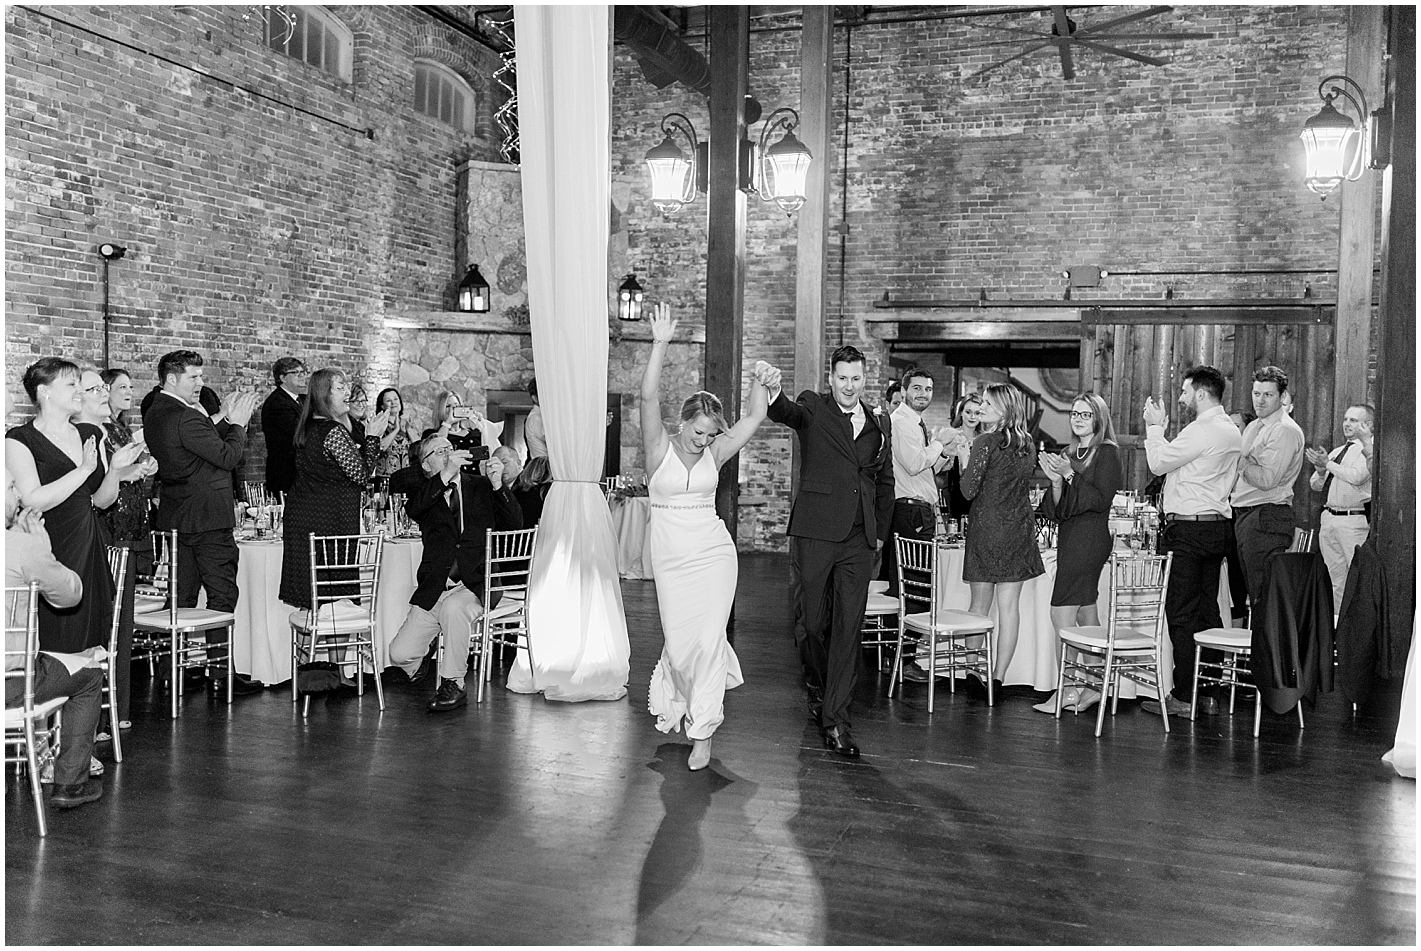 Bride and Groom Grand Entrance Photo by Alyssa Parker Photography